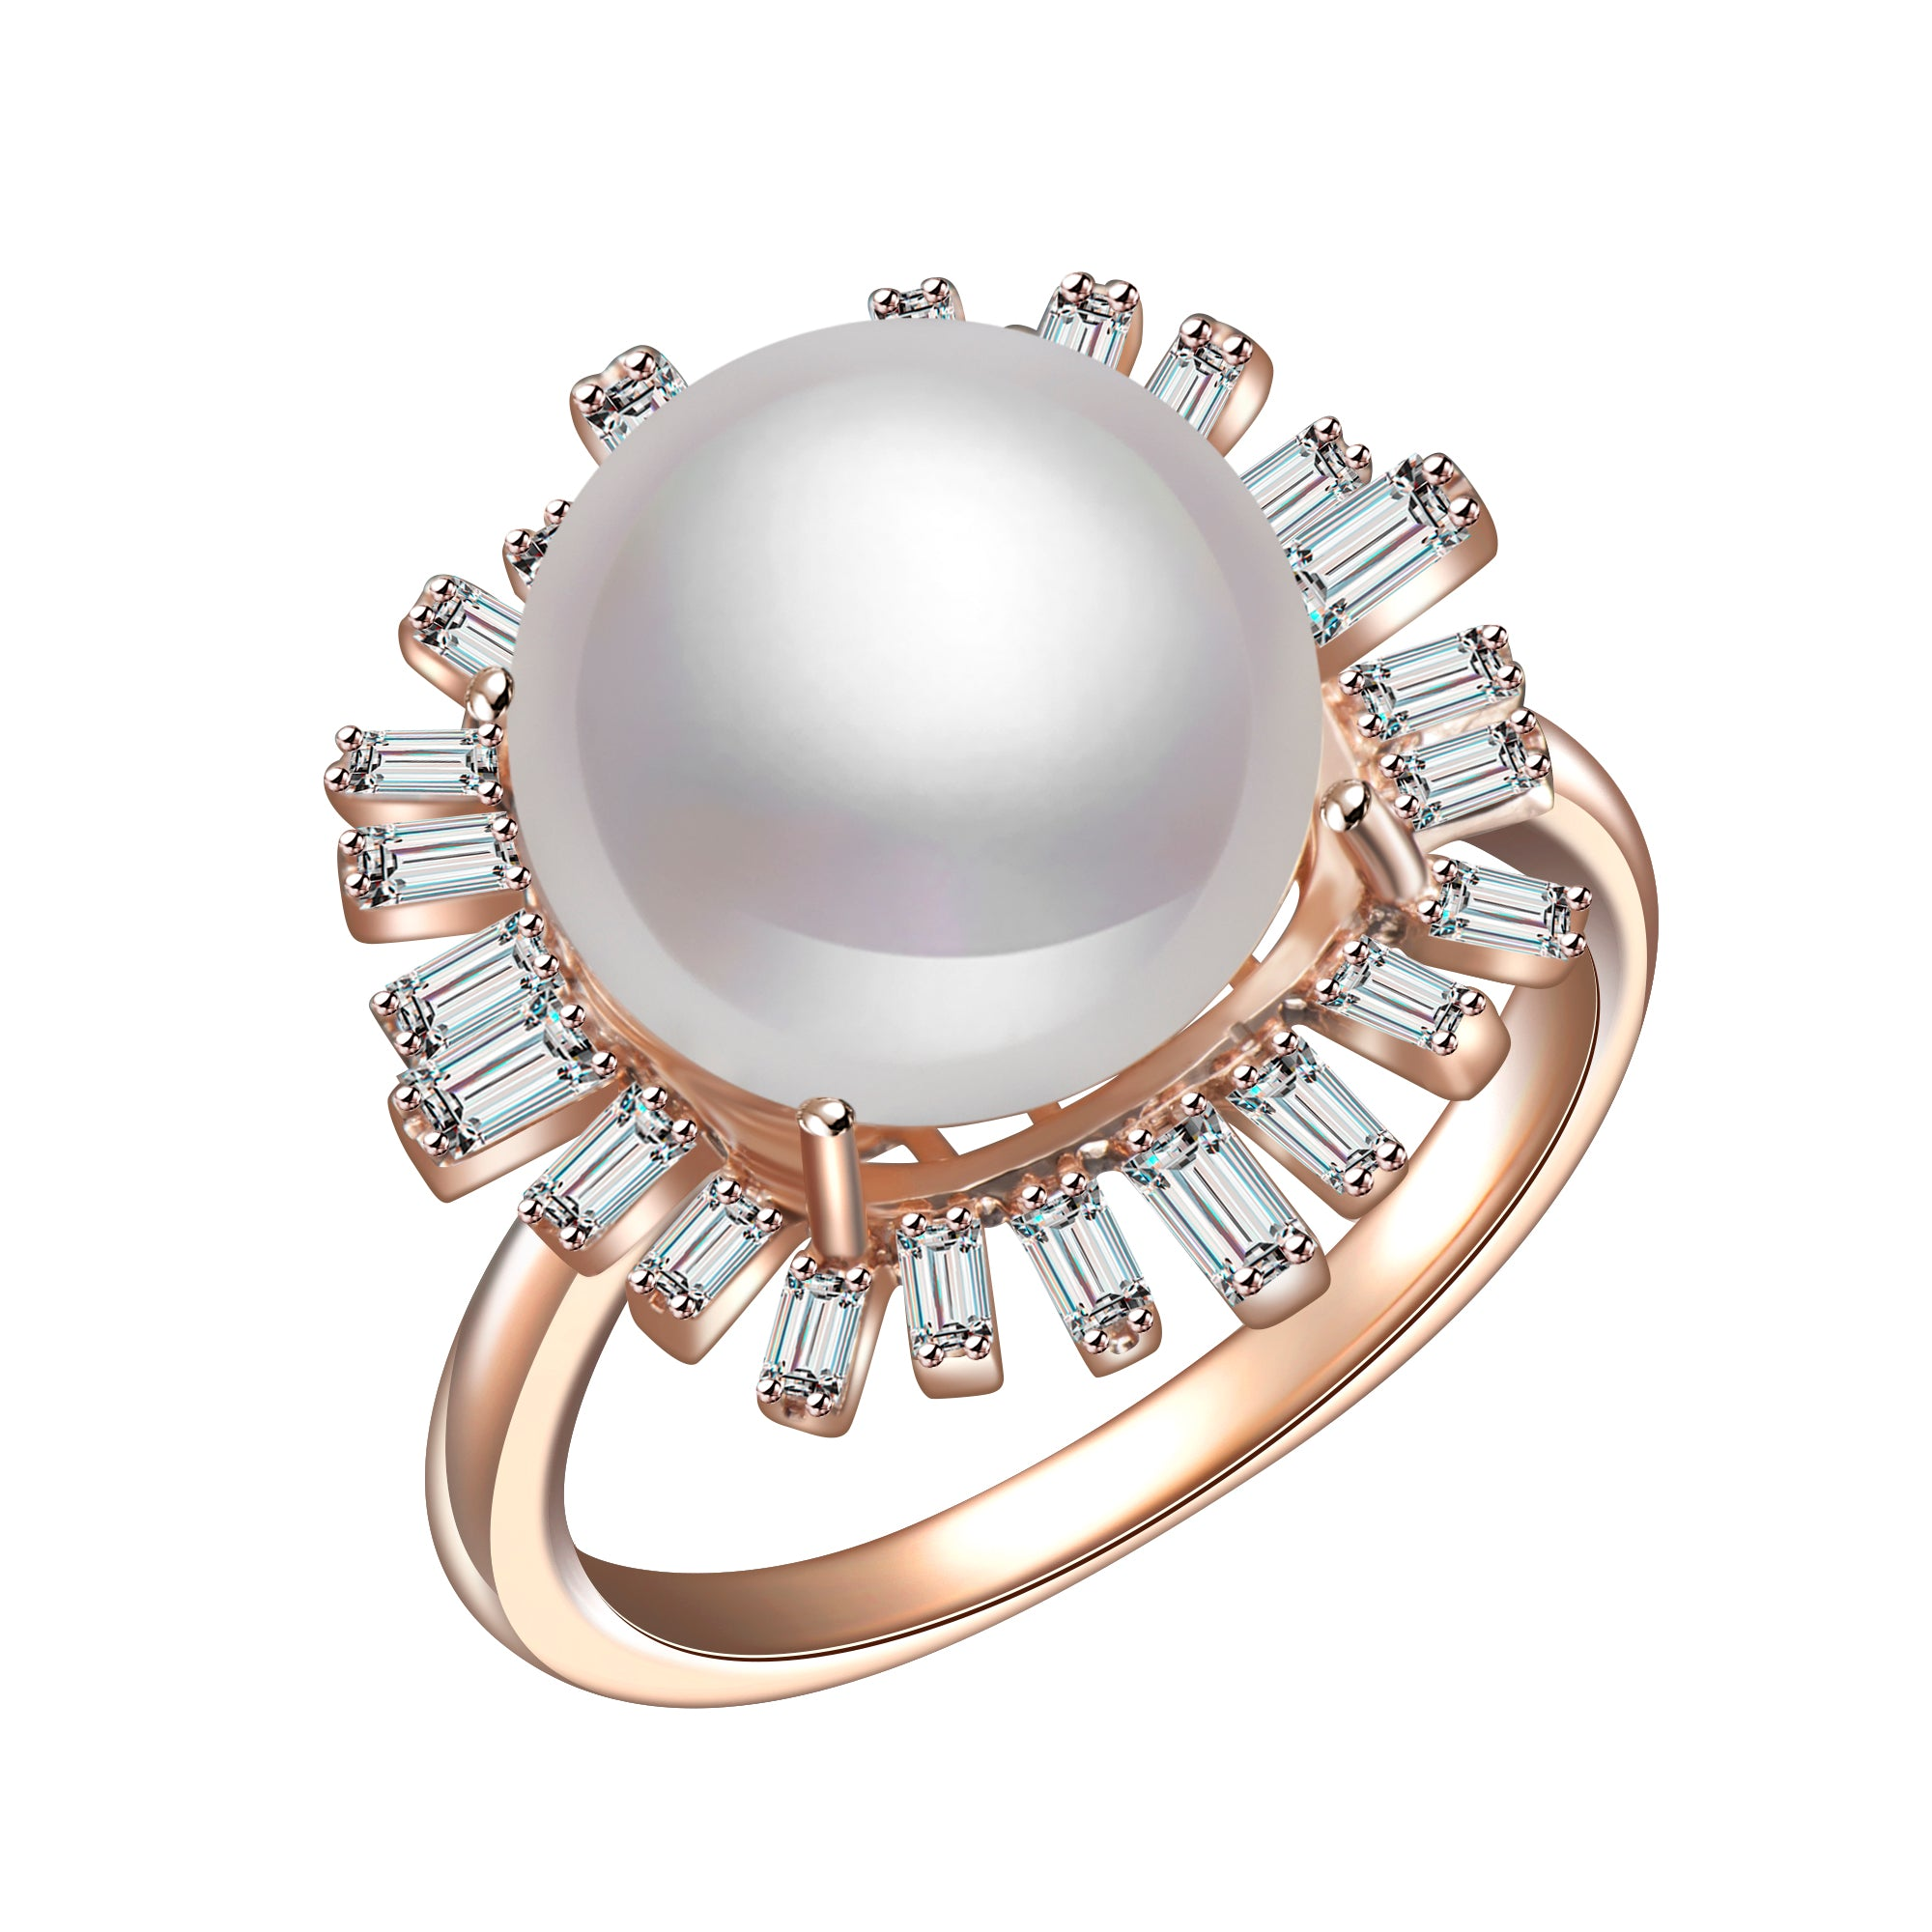 ring and engagement collection collections pearl melody freshadama freshwater paradise diamond rings